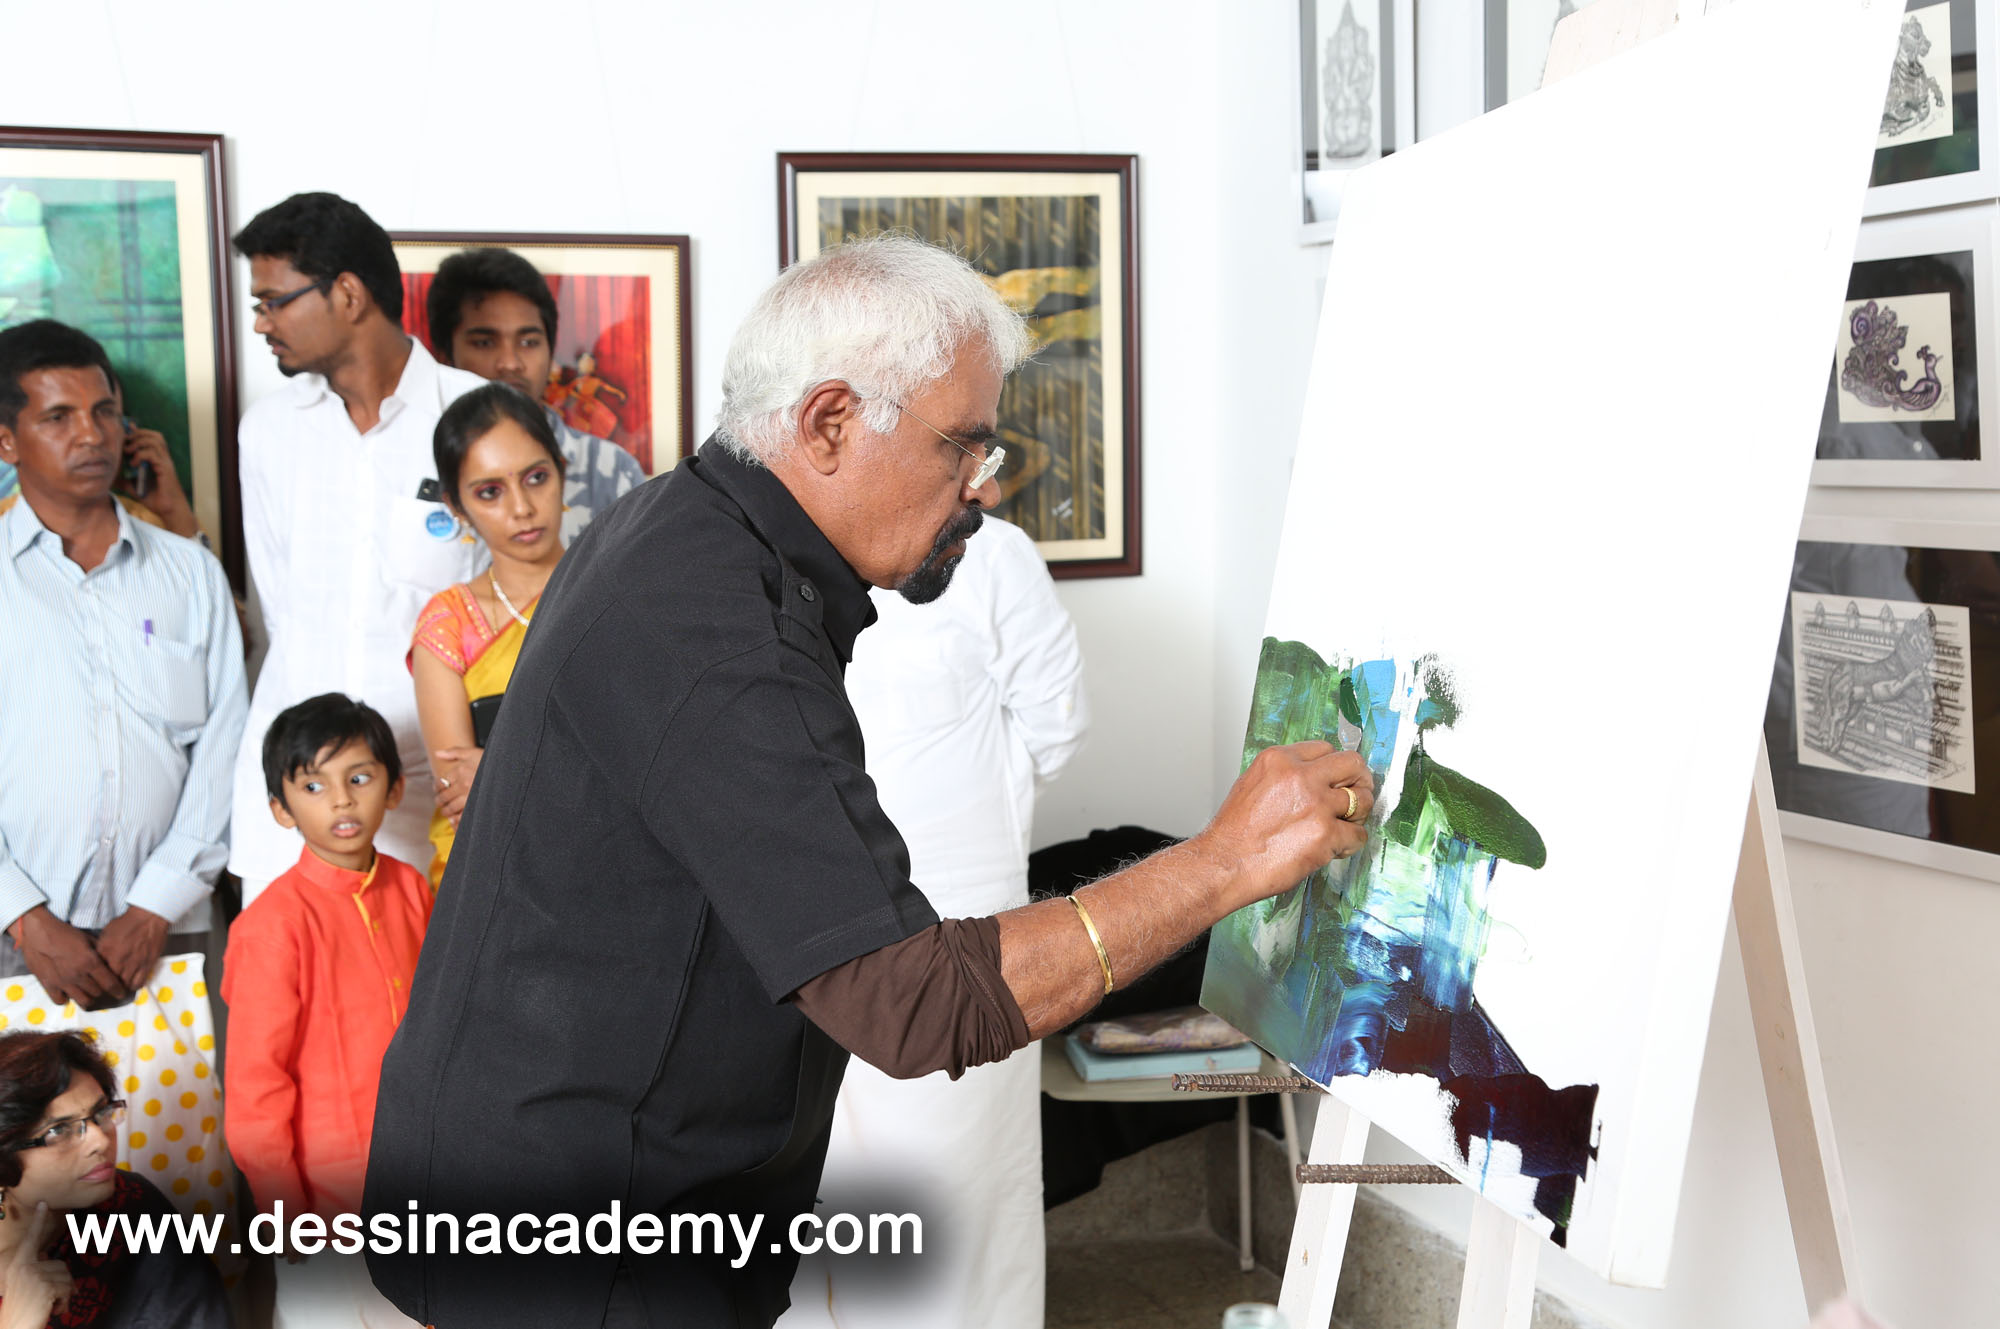 Dessin School of arts Event Gallery 2, sketching School in Anna Nagar EastDessin School of Arts